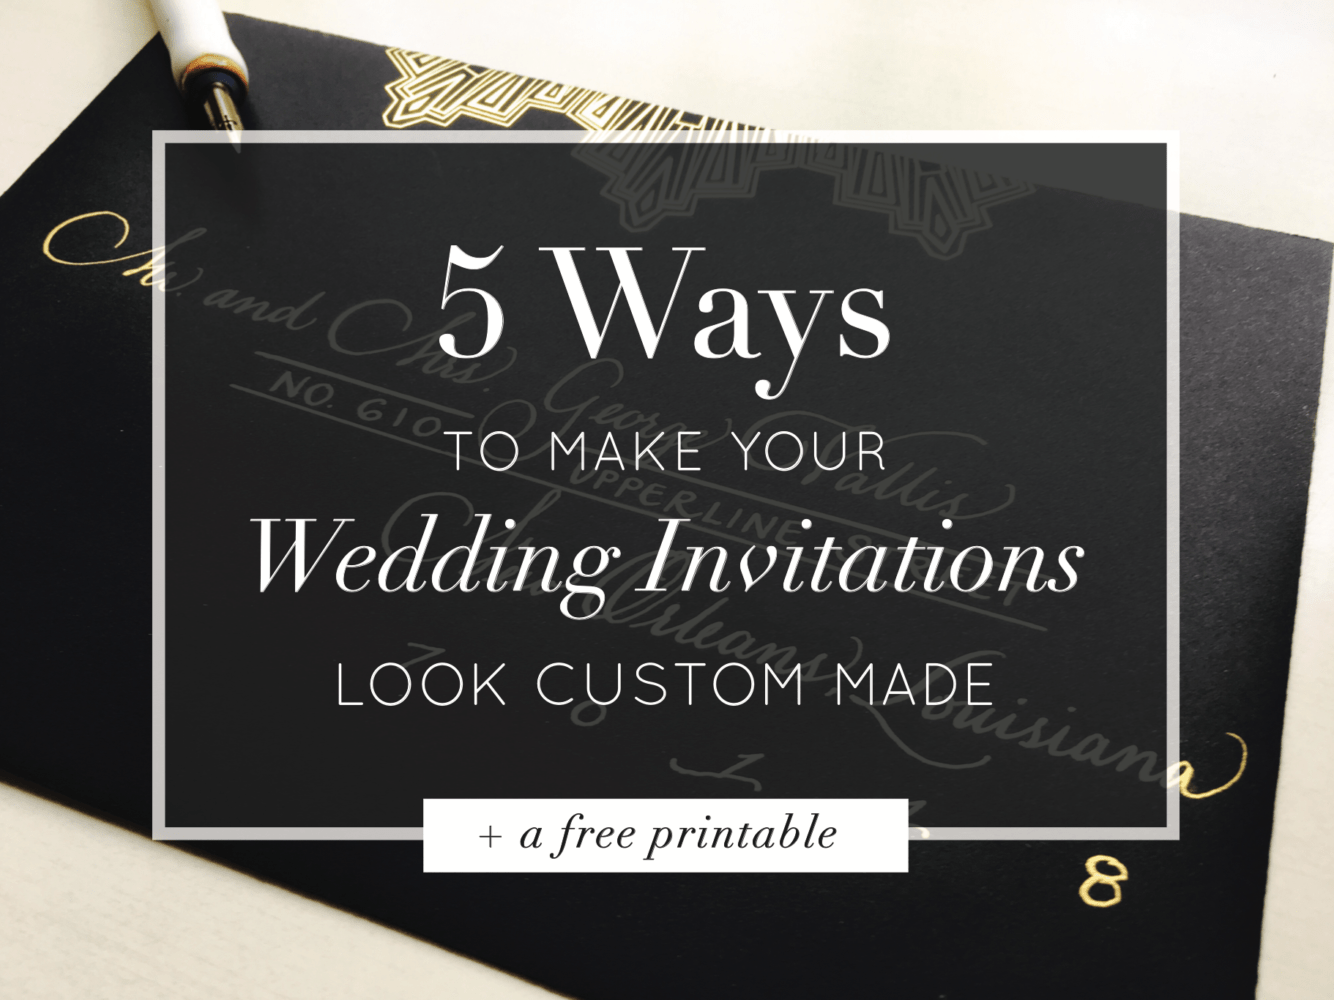 5 Ways To Make Your Wedding Invitations Look Custom Made